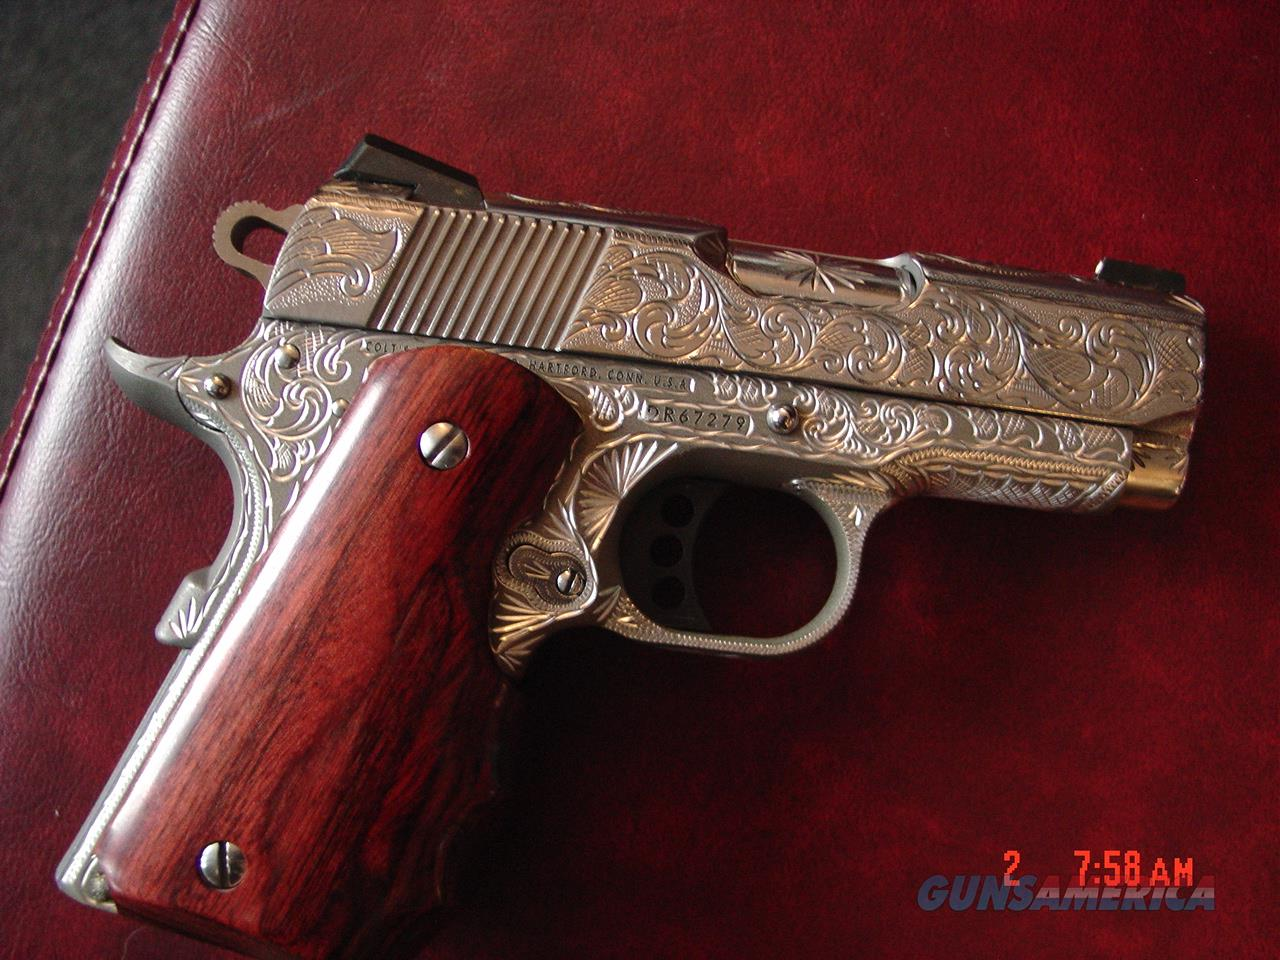 """Colt Defender,3"""" engraved & polished by Flannery Engraving,custom Rosewood grips,45acp,certificate,white dot sites,1 of a kind work of art !!  Guns > Pistols > Colt Automatic Pistols (1911 & Var)"""